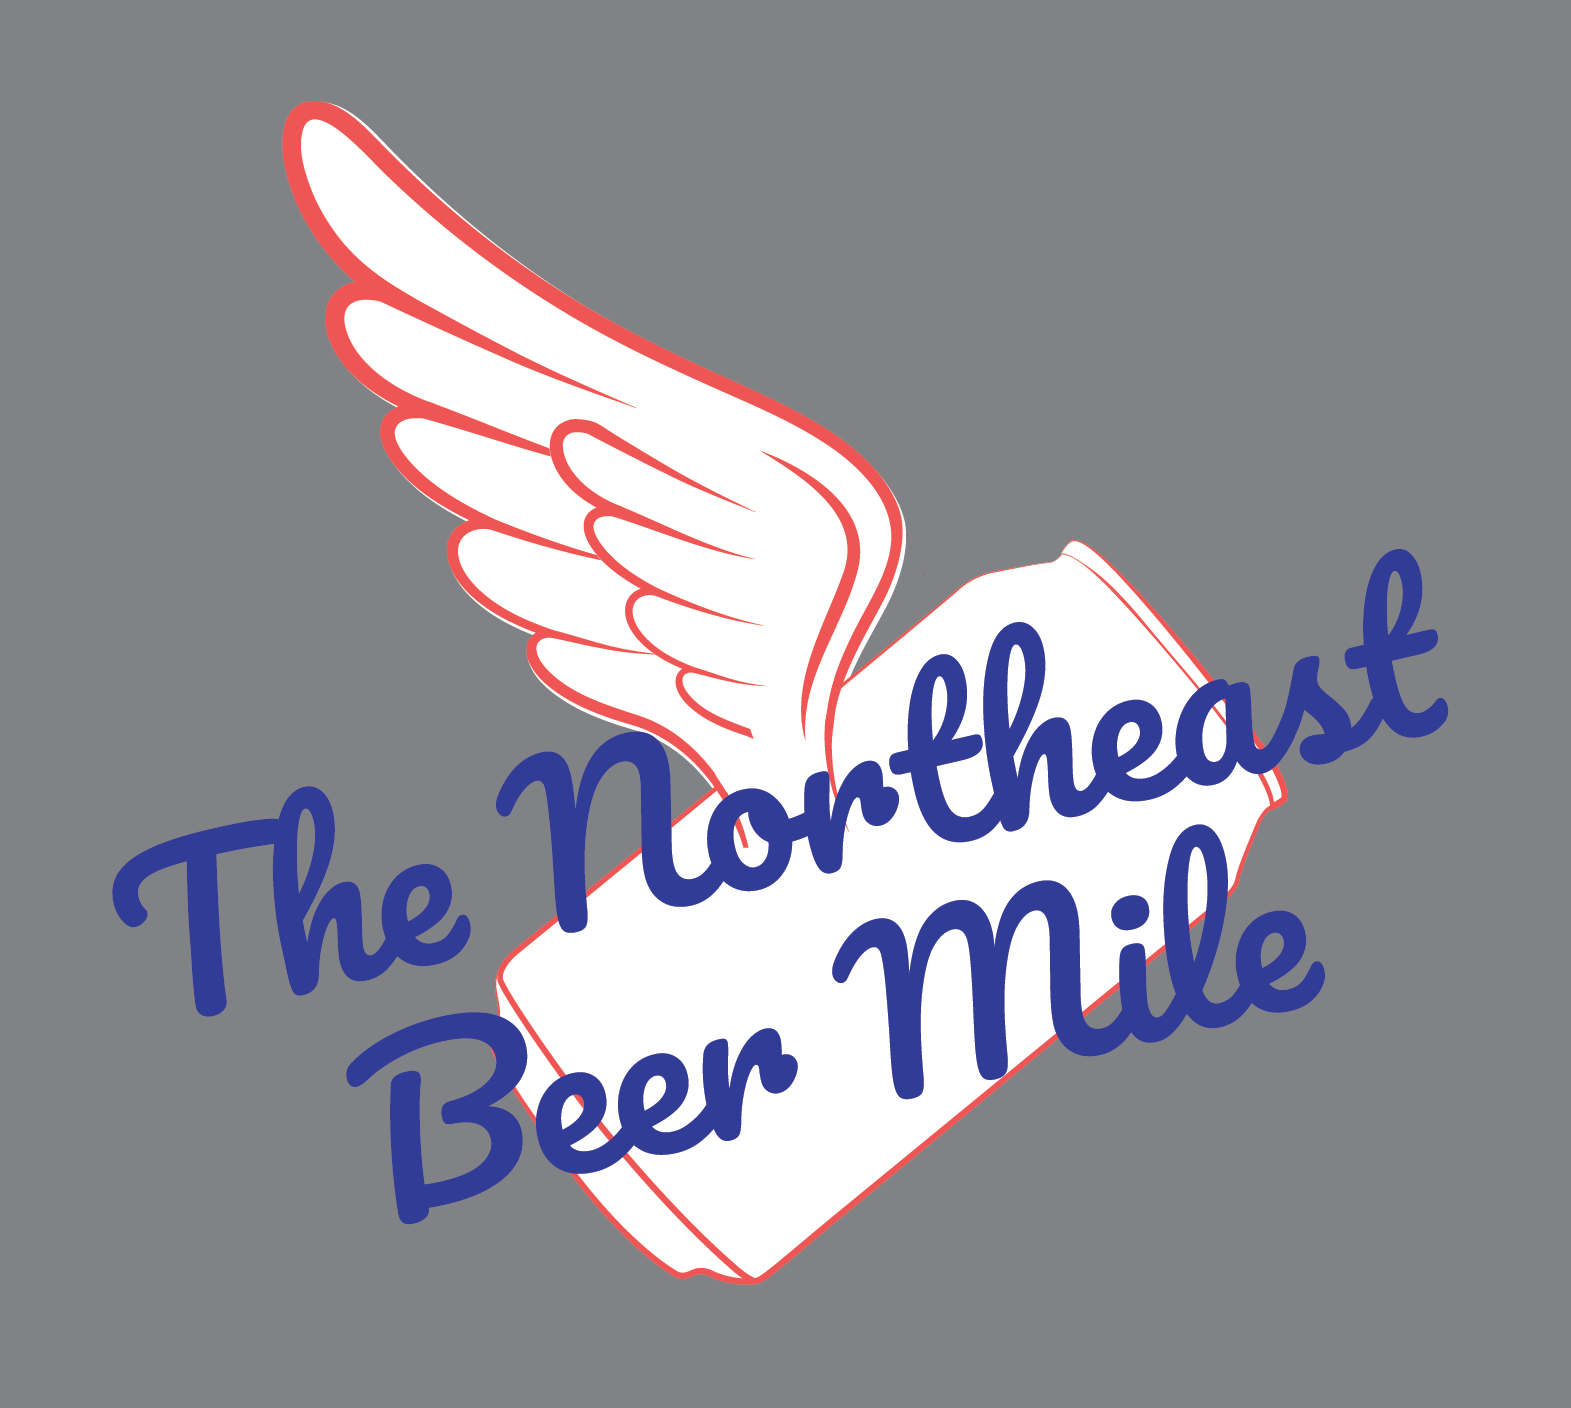 beer-mile-tshirt-graphic-design.png